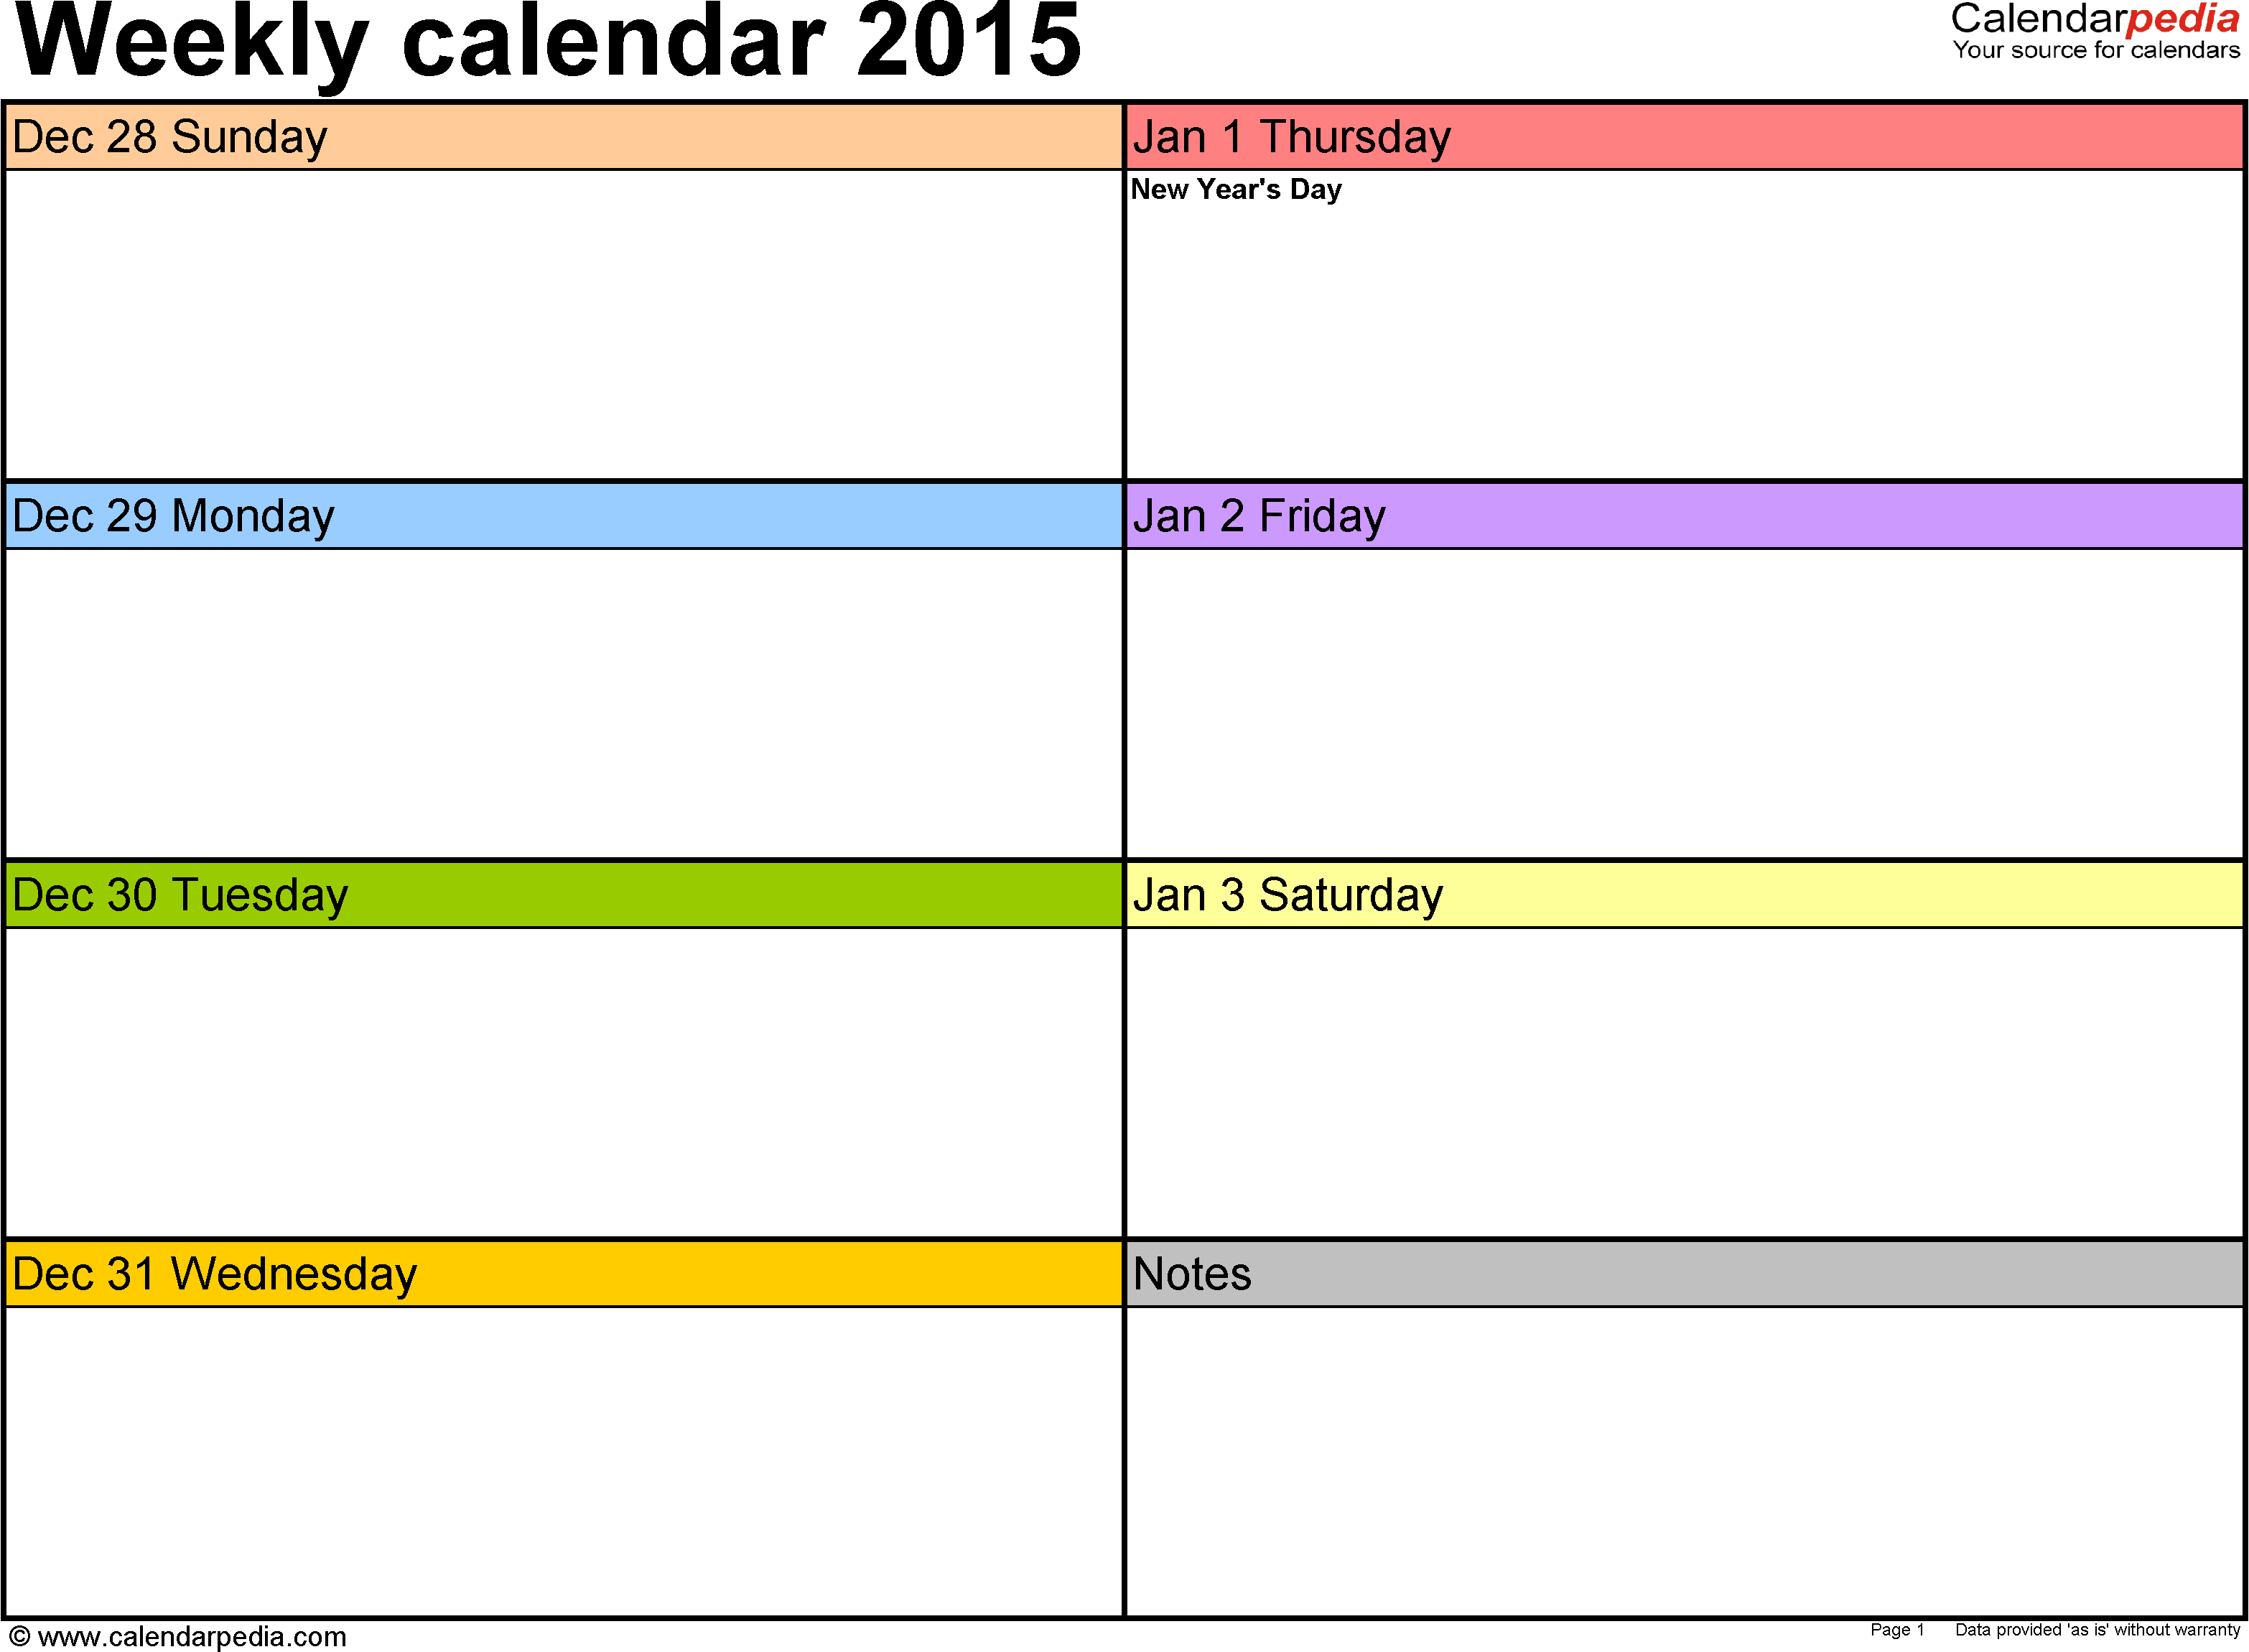 Weekly calendar 2015: template for Word version 6, landscape, 53 pages, in color, week divided into 2 columns (7 days and one field for notes)